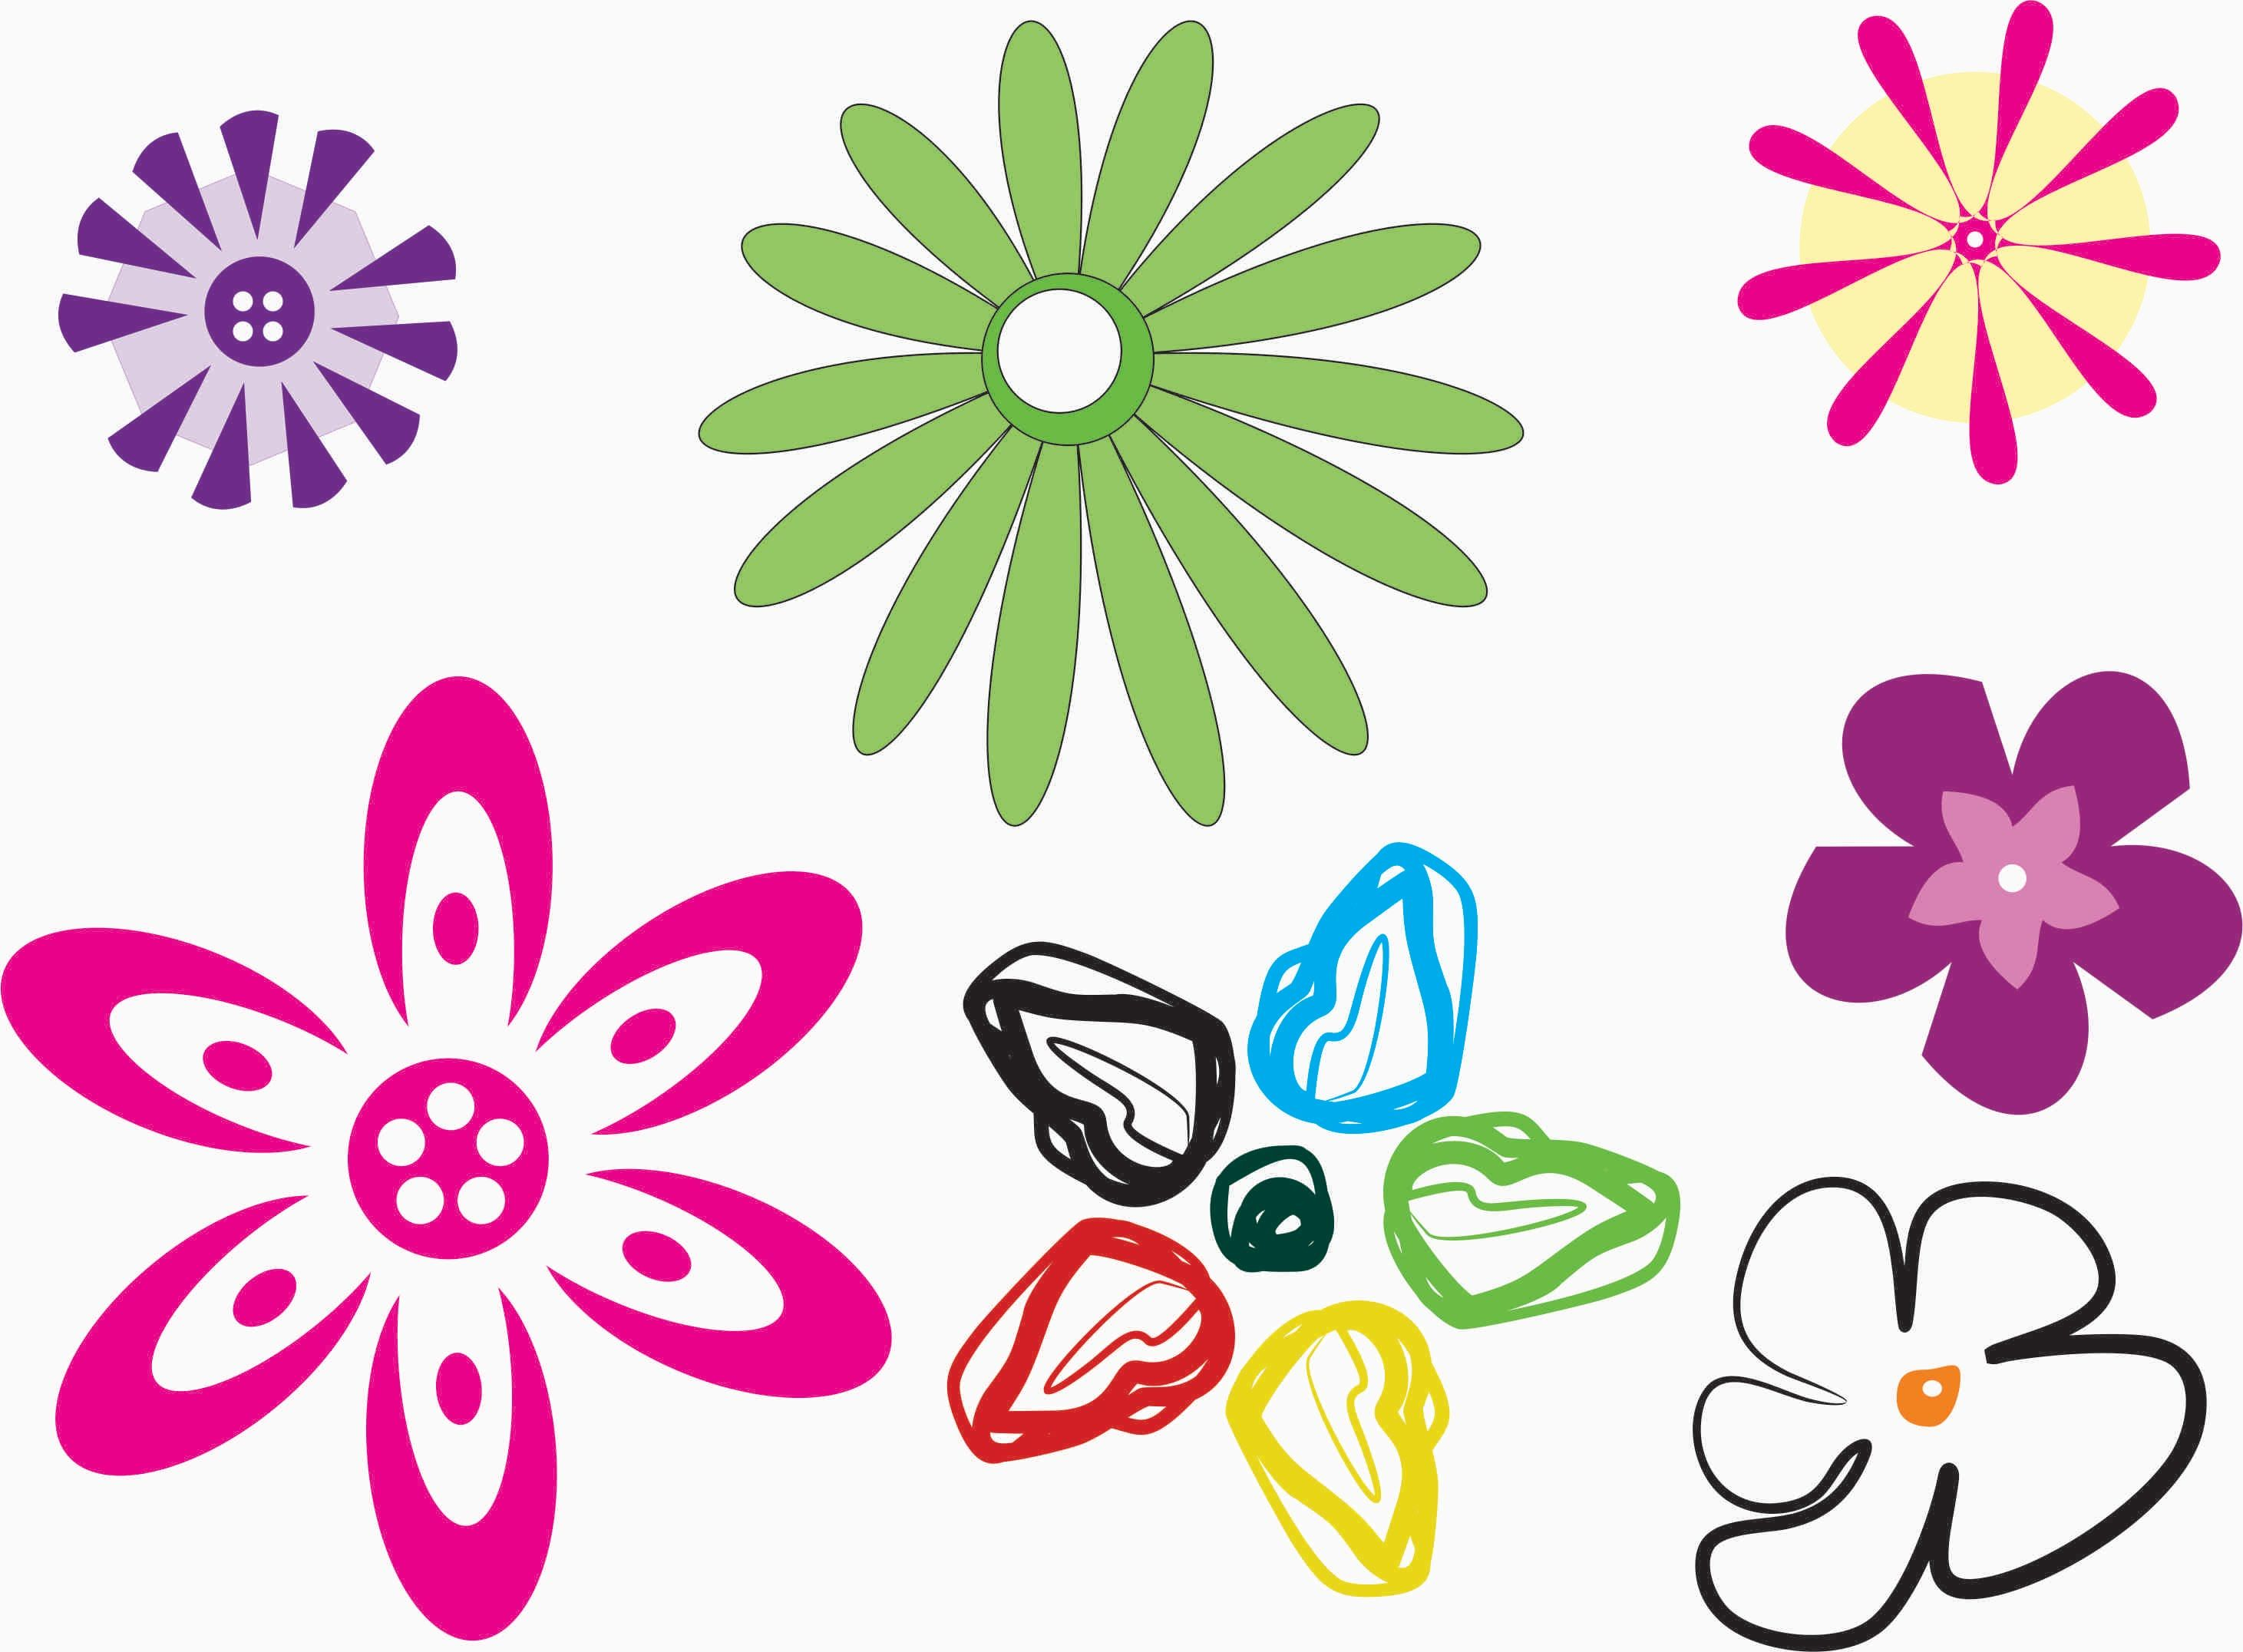 hight resolution of tutorial corel draw como hacer flores basico c a r t